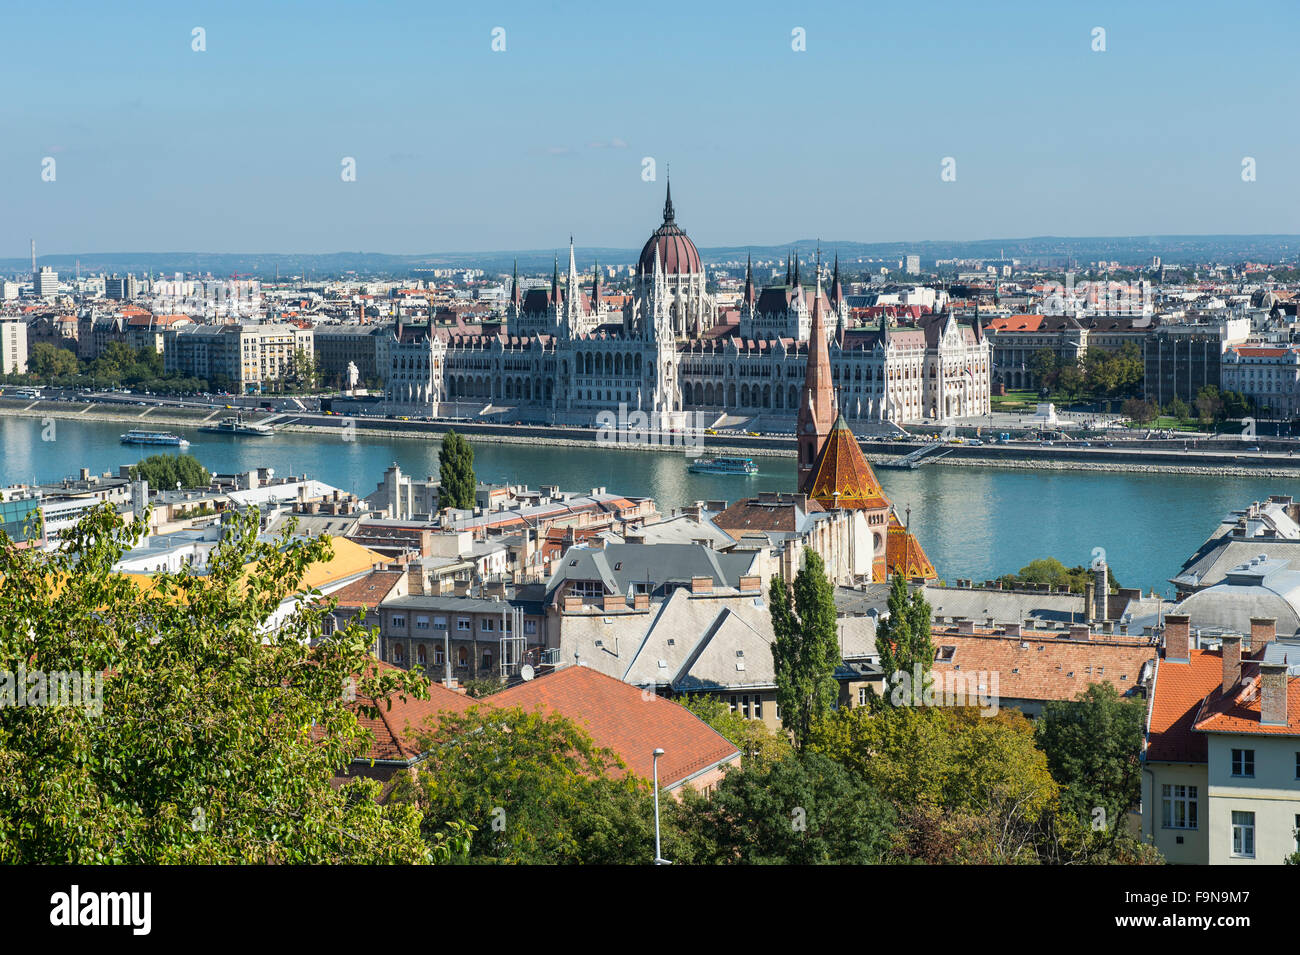 View of the Hungarian Parliament Building from Fisherman's Bastion, Budapest, Hungary - Stock Image